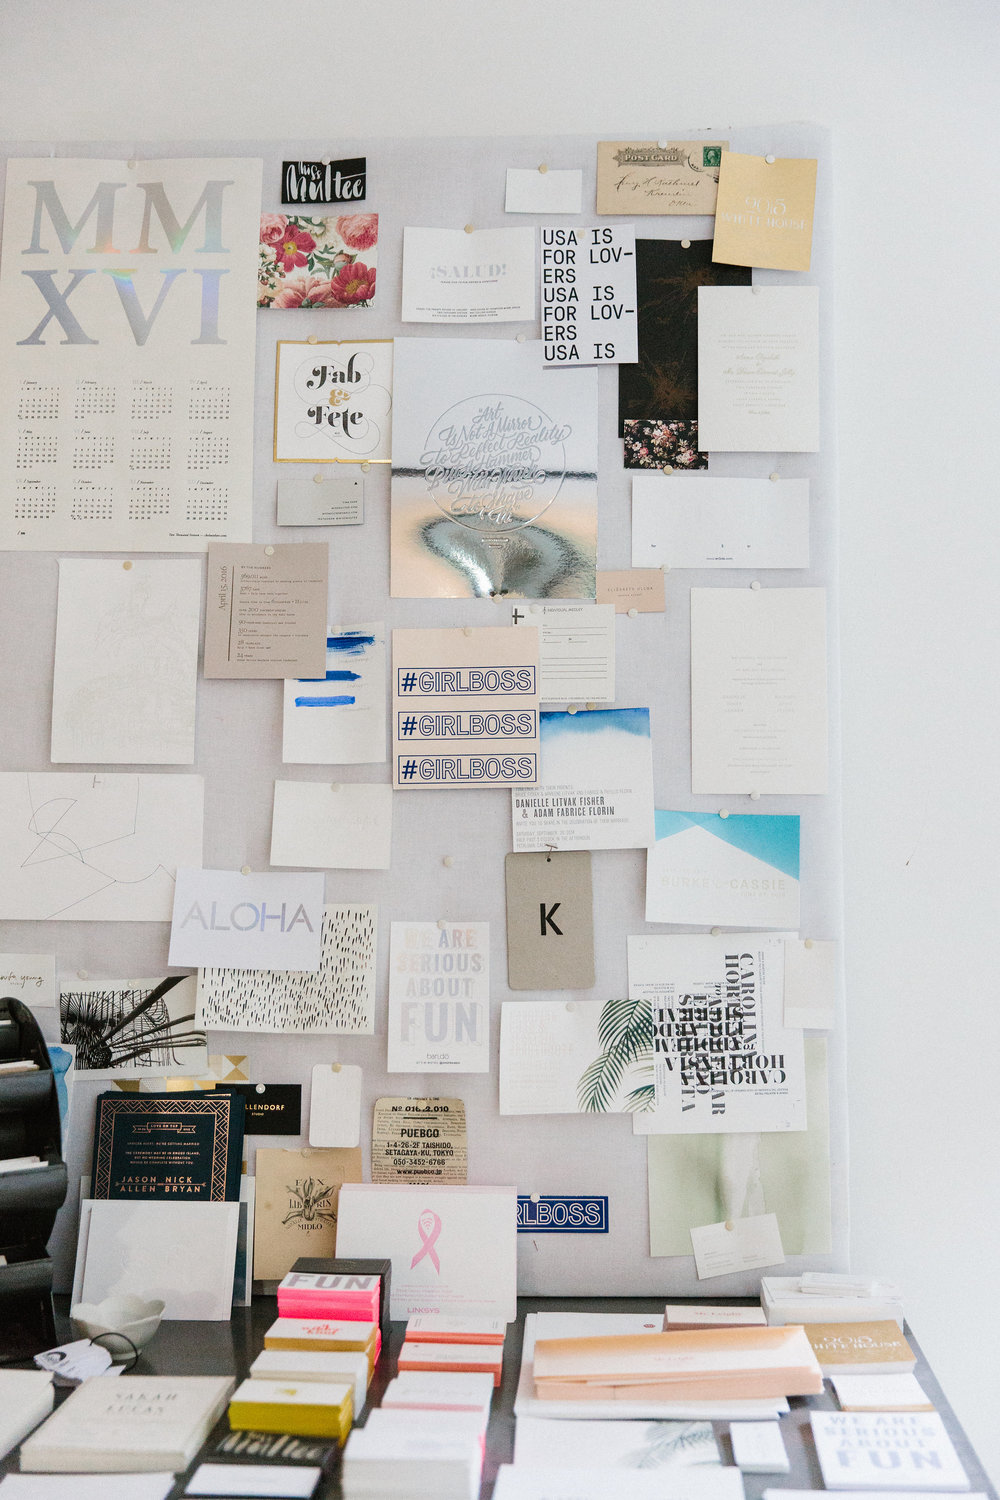 Studio moodboard of inspiration + previous print projects